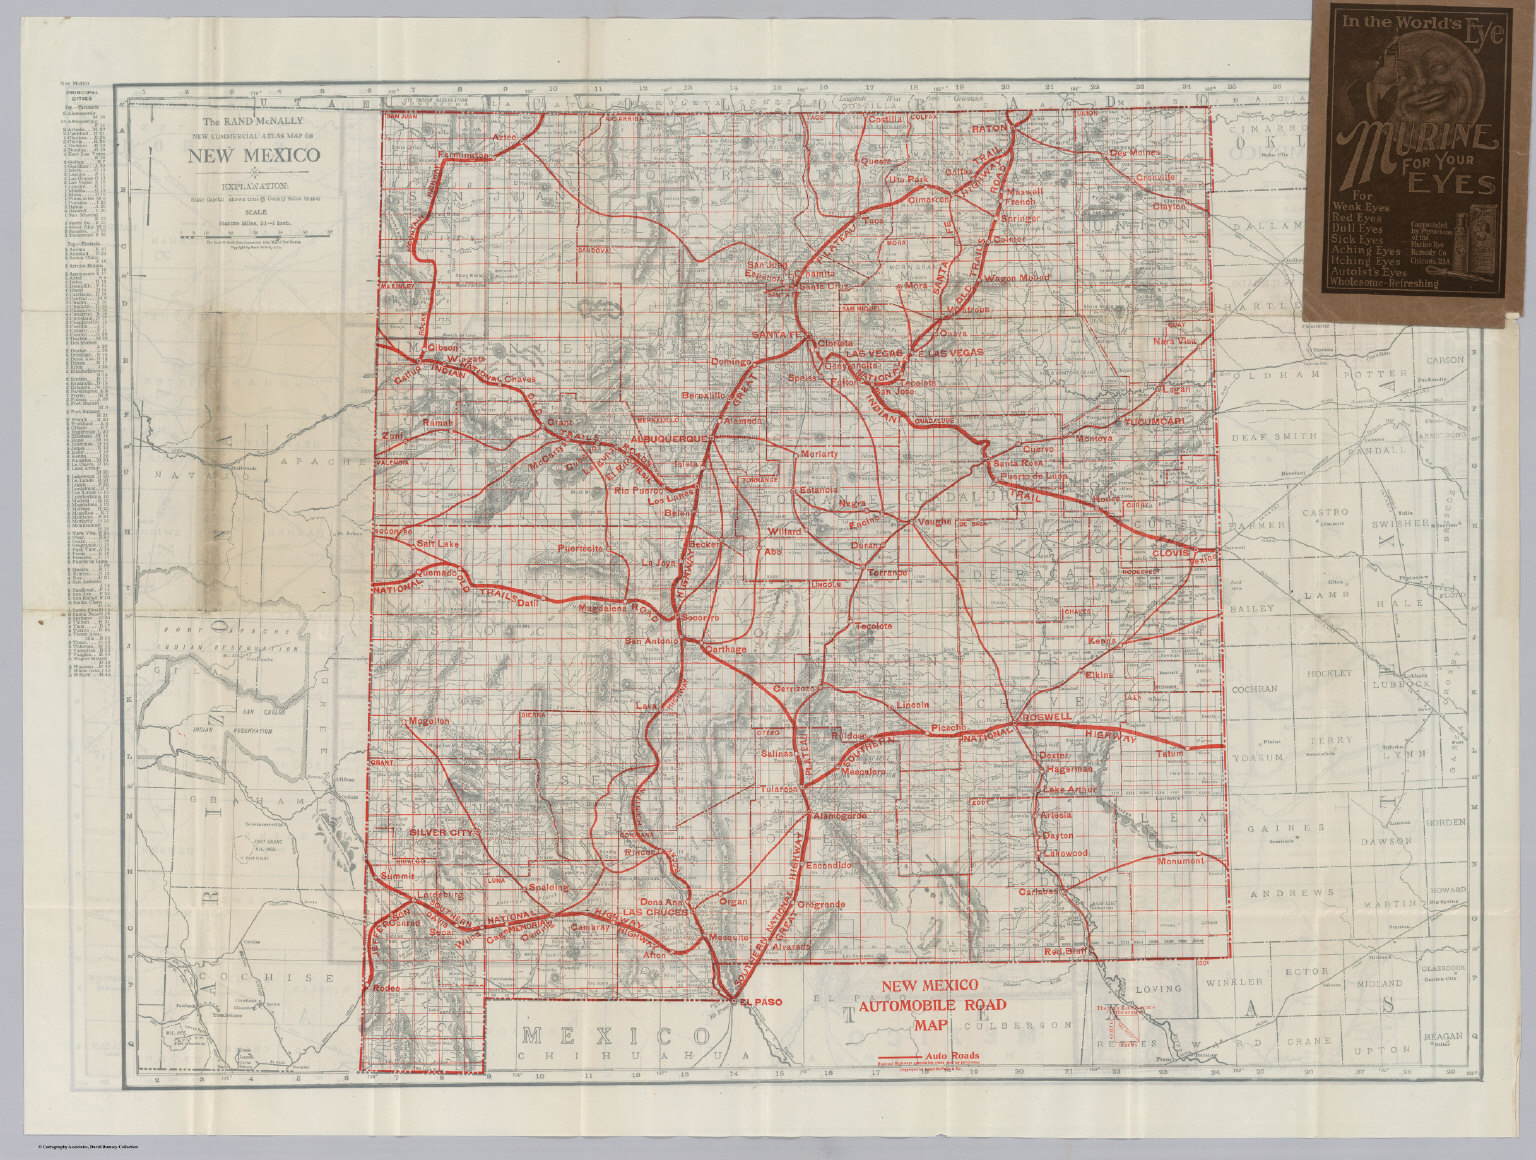 New Mexico Automobile Road Map David Rumsey Historical Map